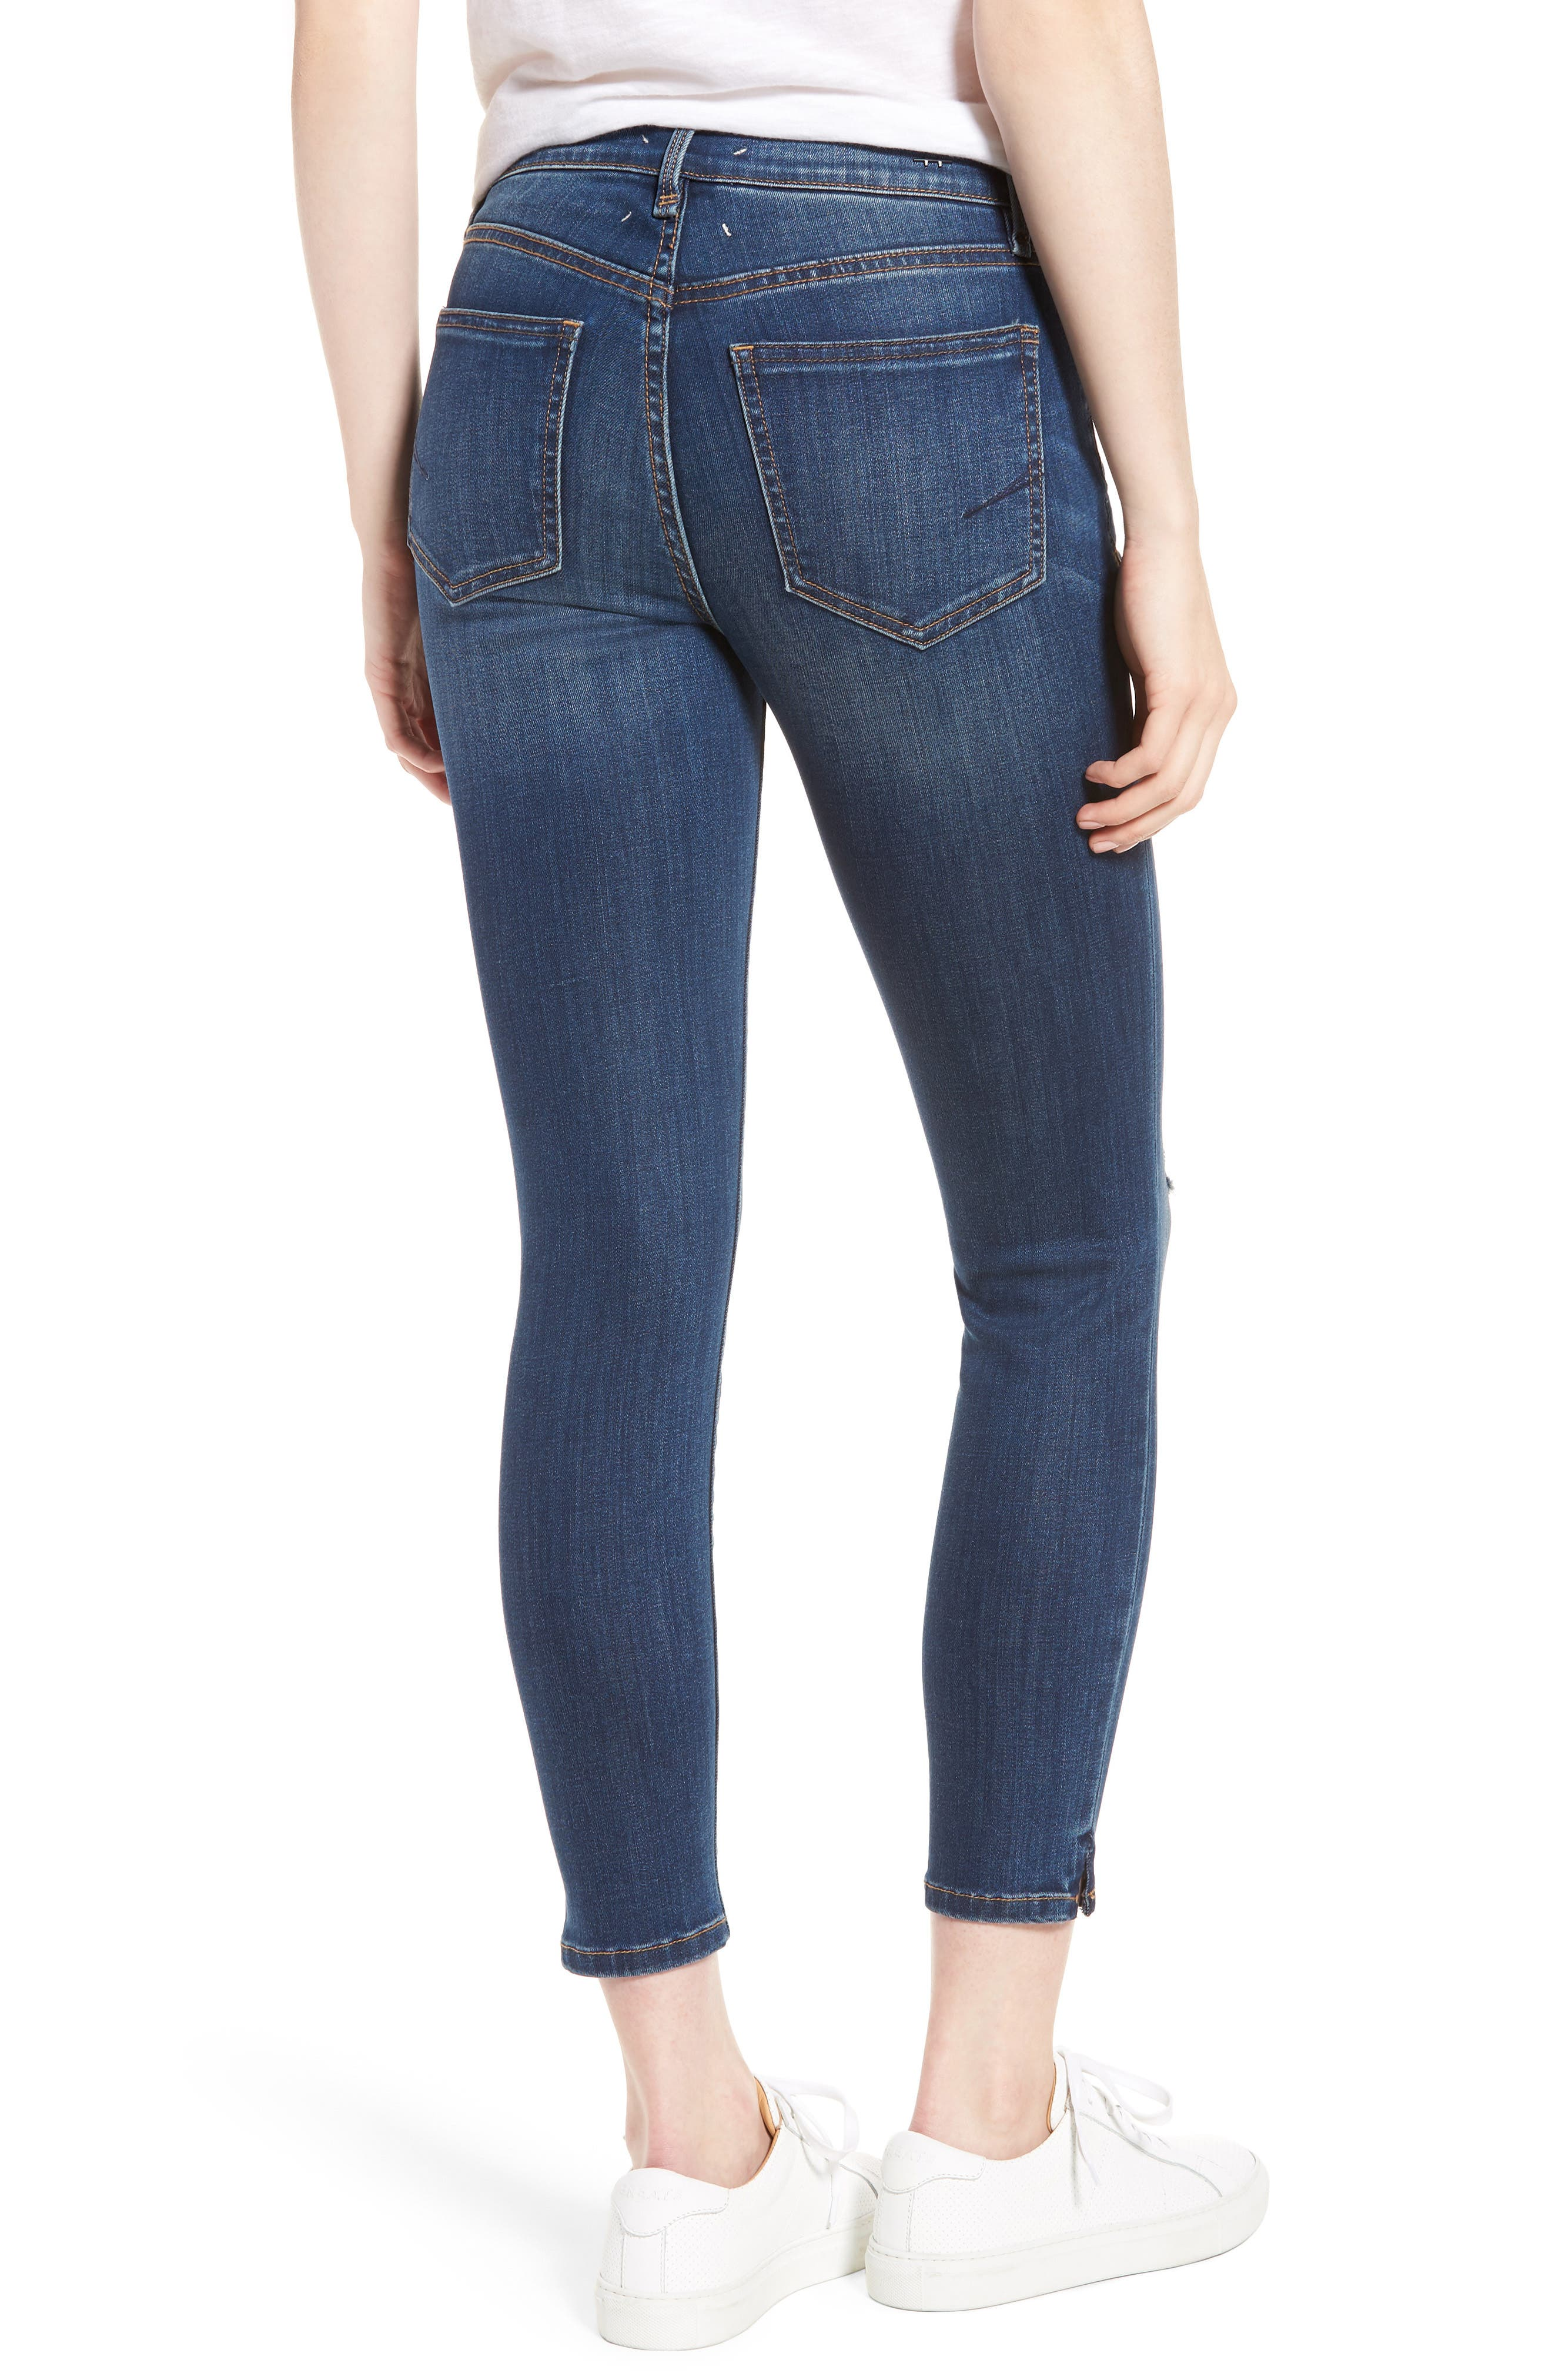 Marina Ankle Skinny Jeans,                             Alternate thumbnail 2, color,                             Basswood